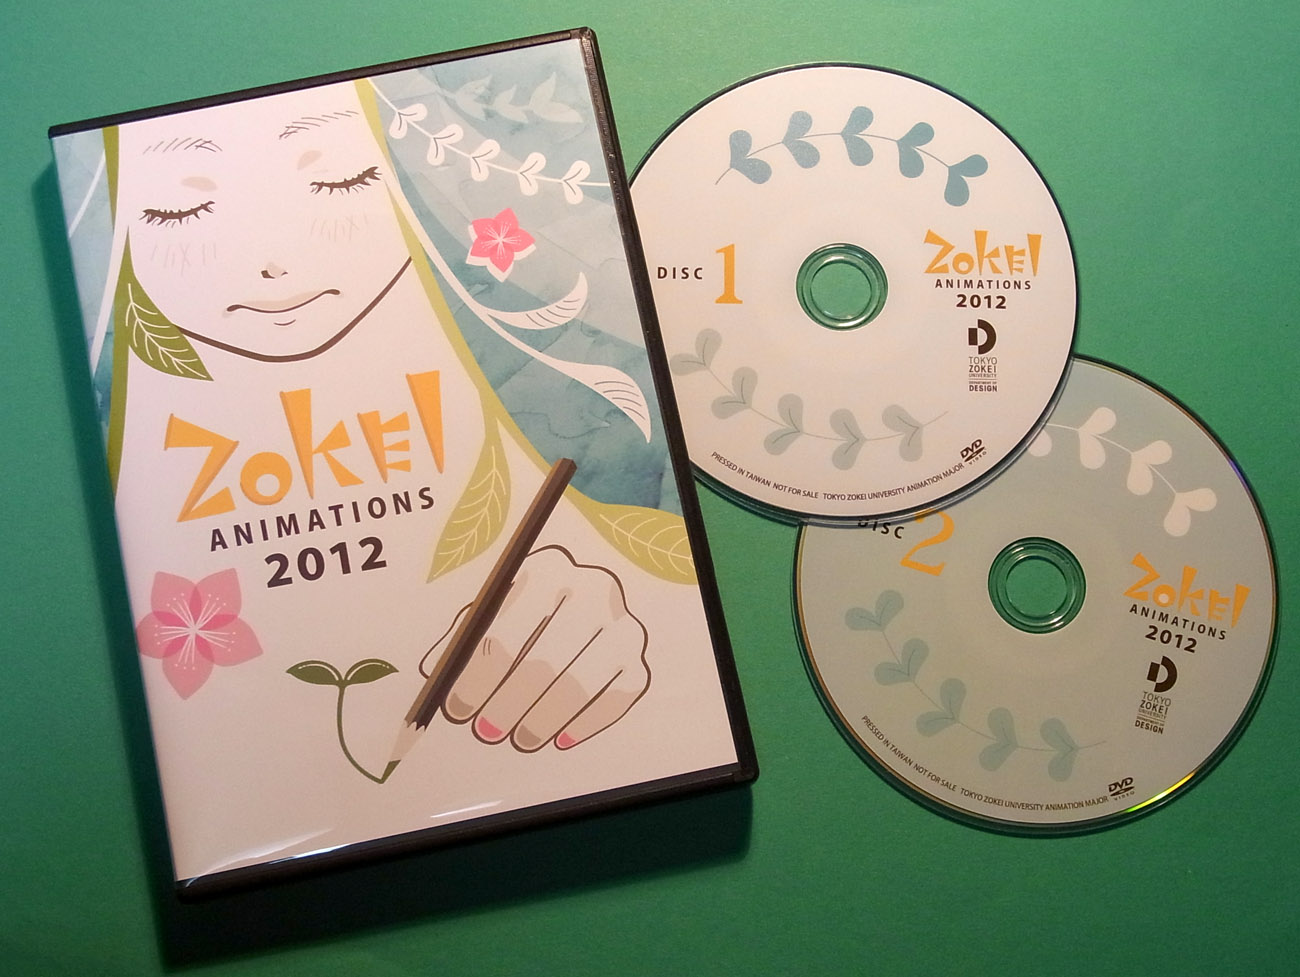 ZOKEI ANIMATIONS 2012